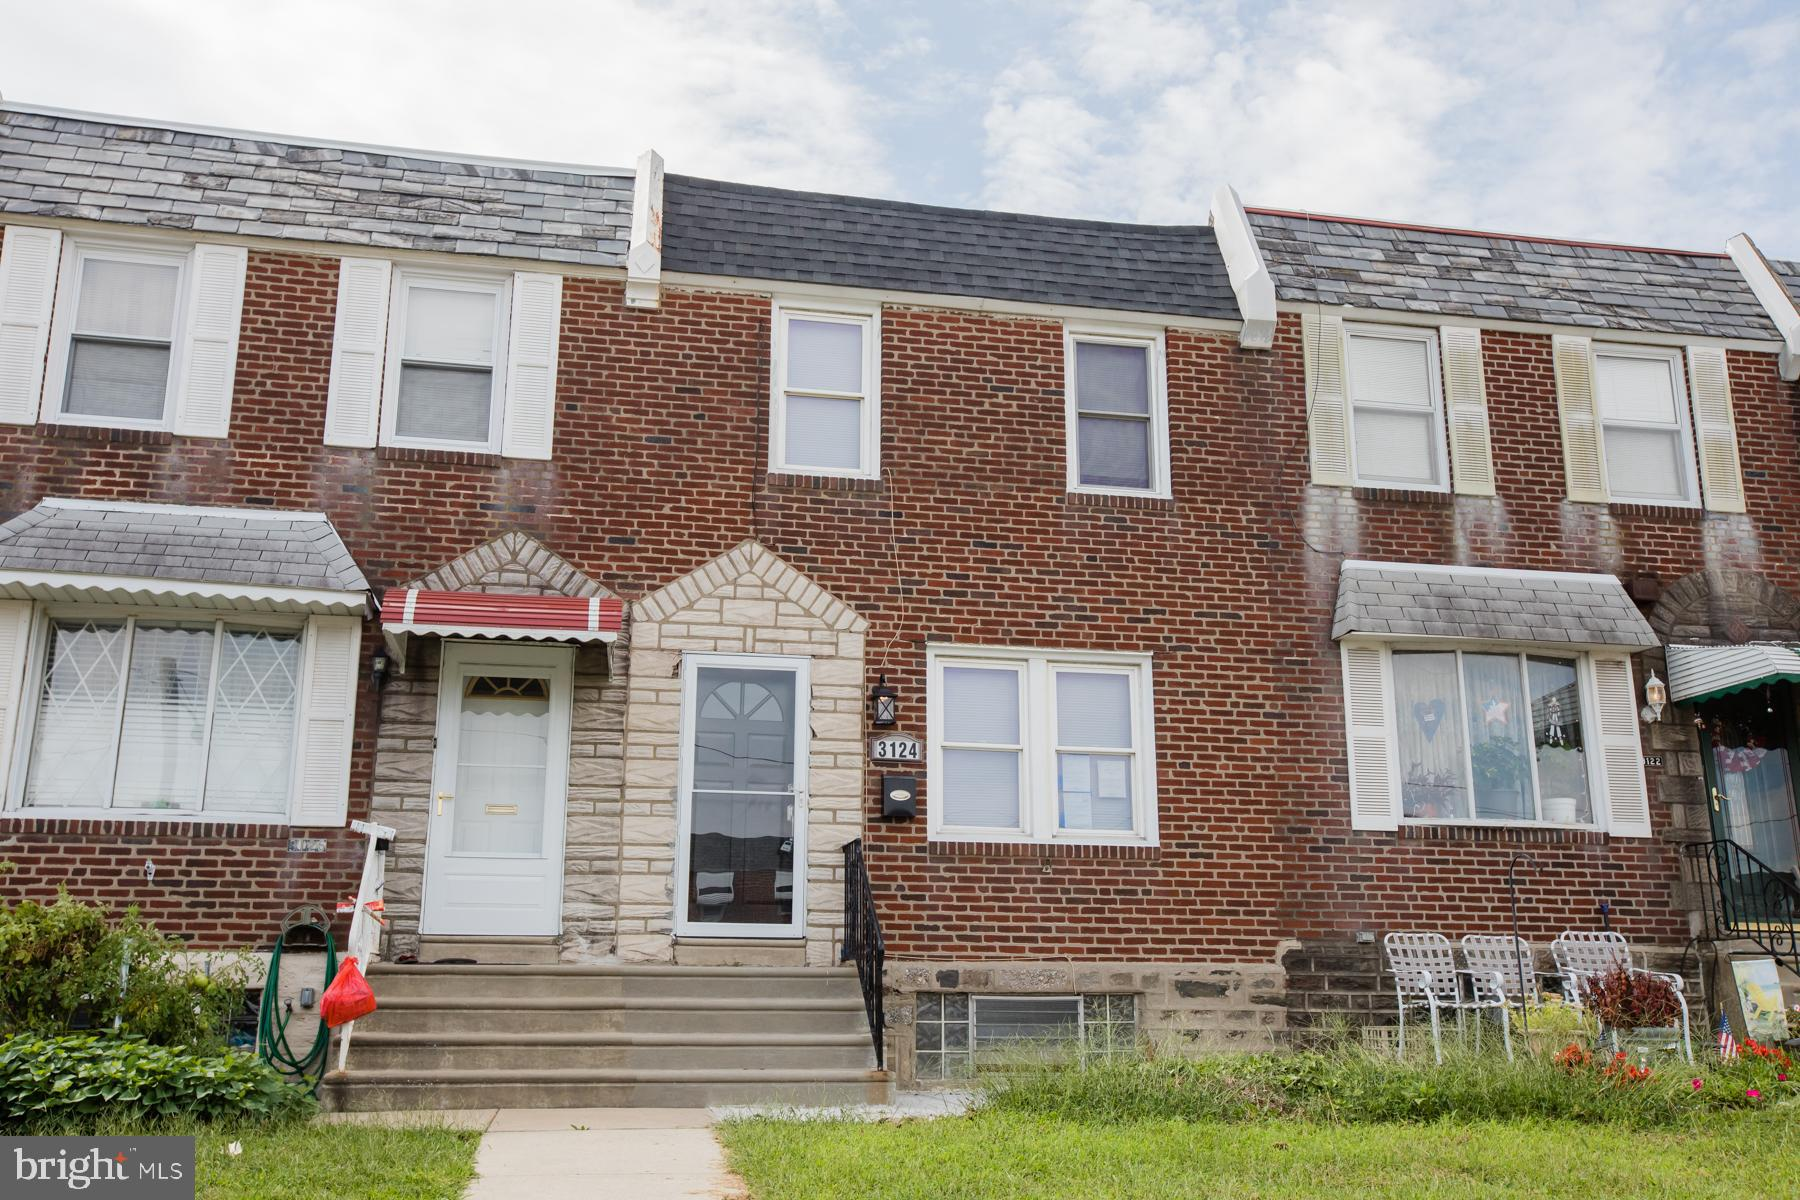 3124 FRIENDSHIP STREET, PHILADELPHIA, PA 19149